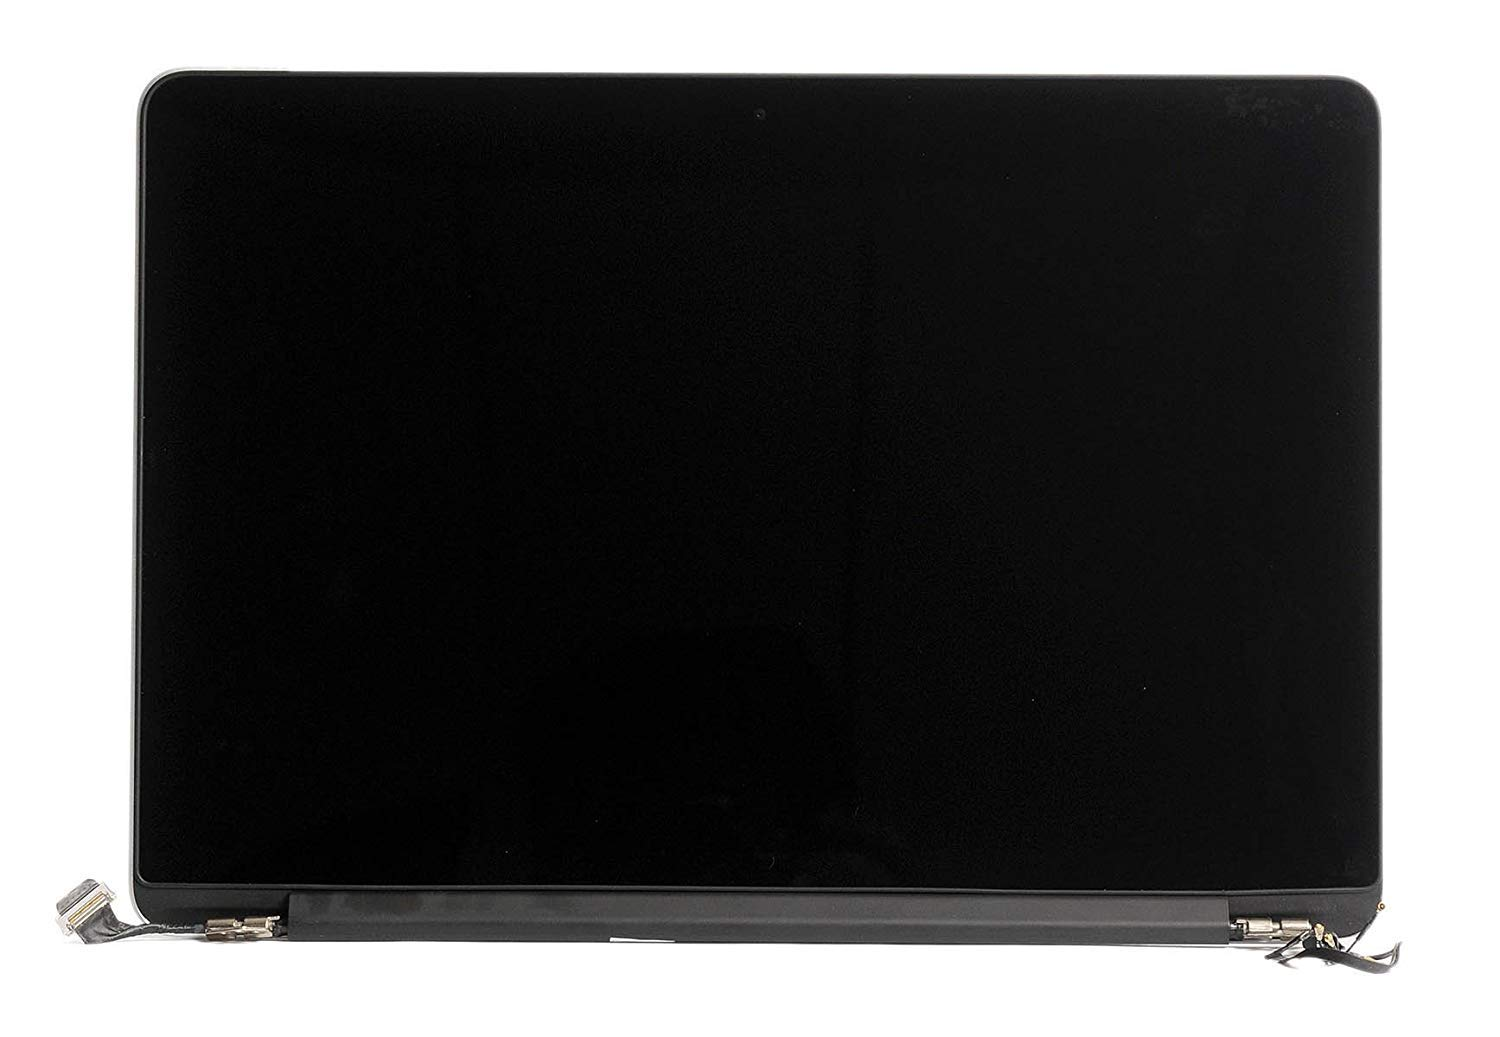 LA-Tronics Repair Part 661-02360 LCD Screen Display Assembly Replacement for MacBook Pro 13'' Retina A1502 Early 2015 by LA-Tronics (Image #2)